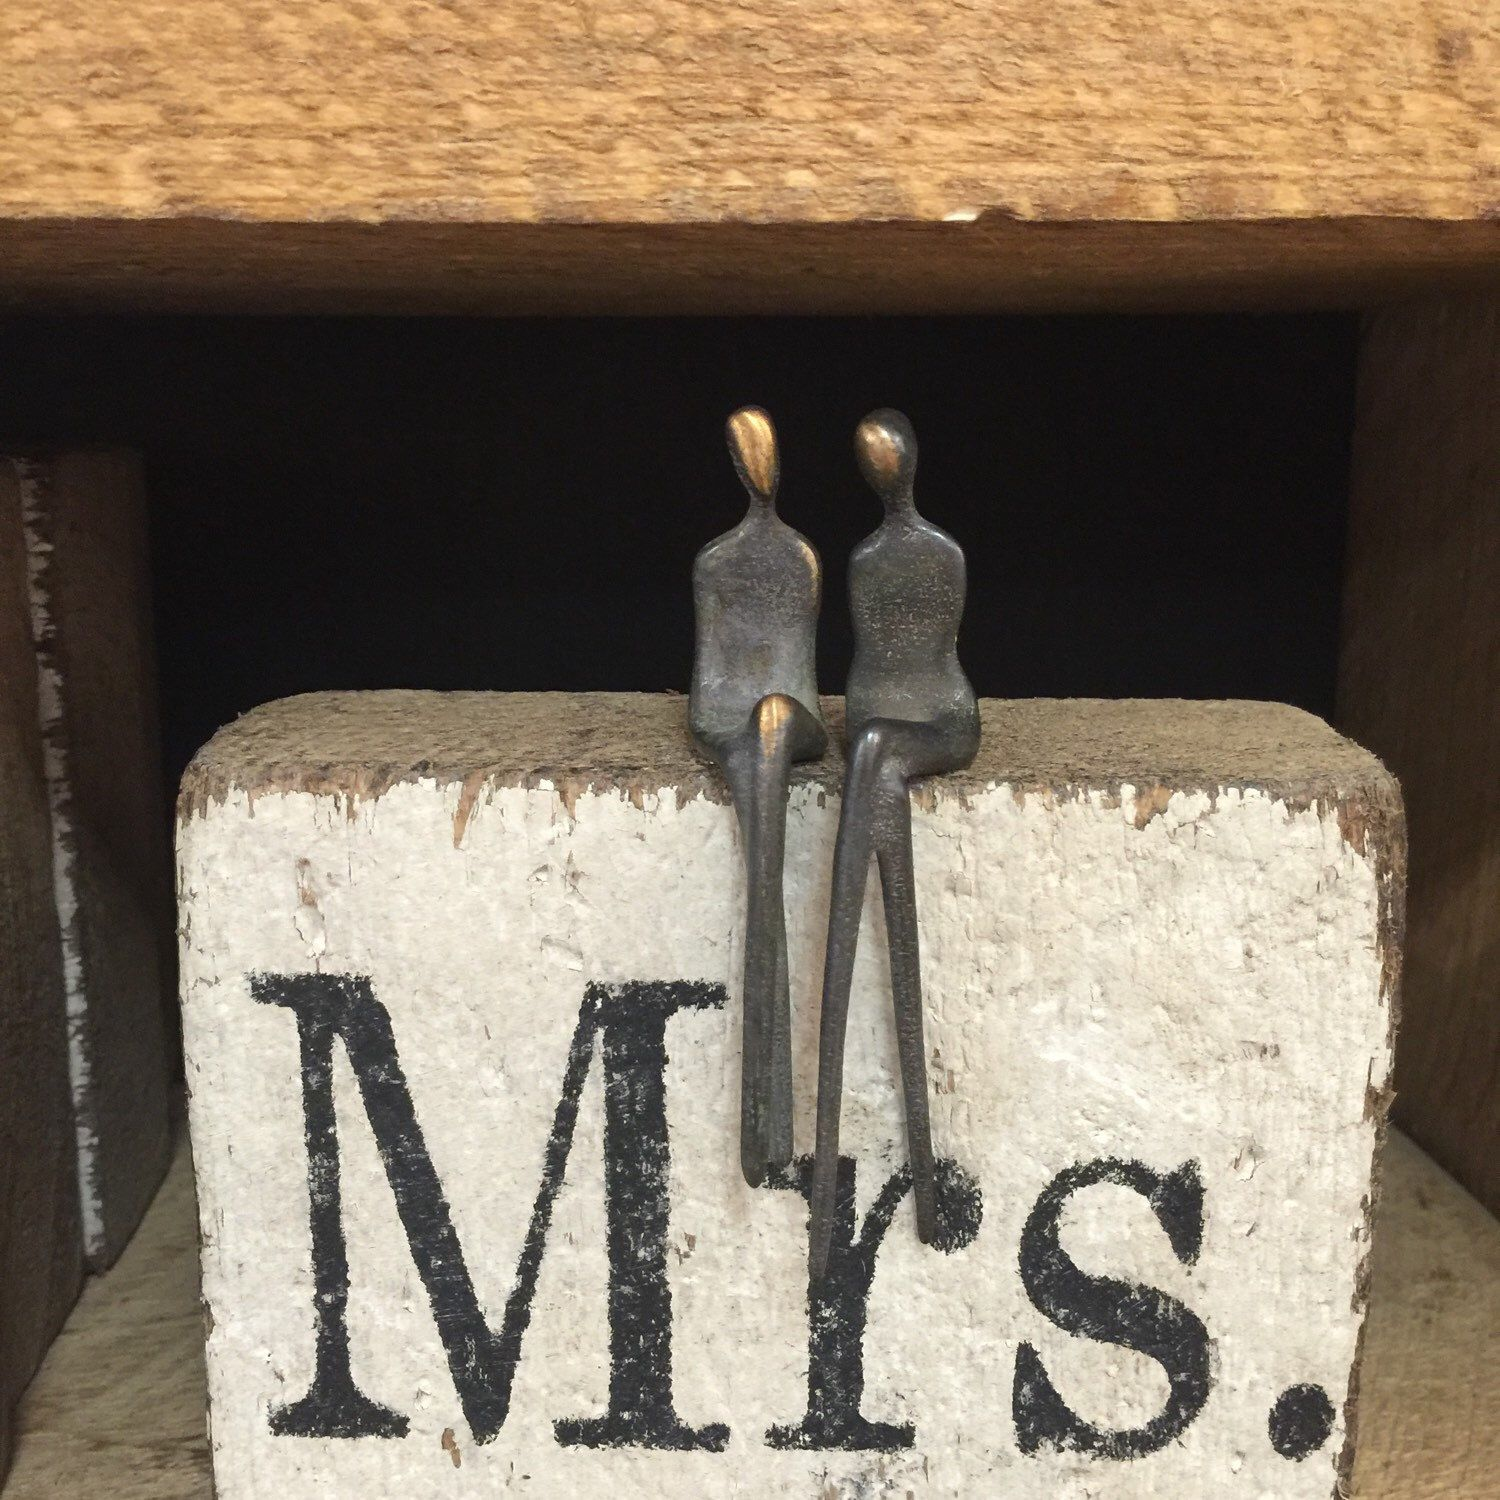 Pin on 8th Wedding Anniversary Gifts for Husband or Wife